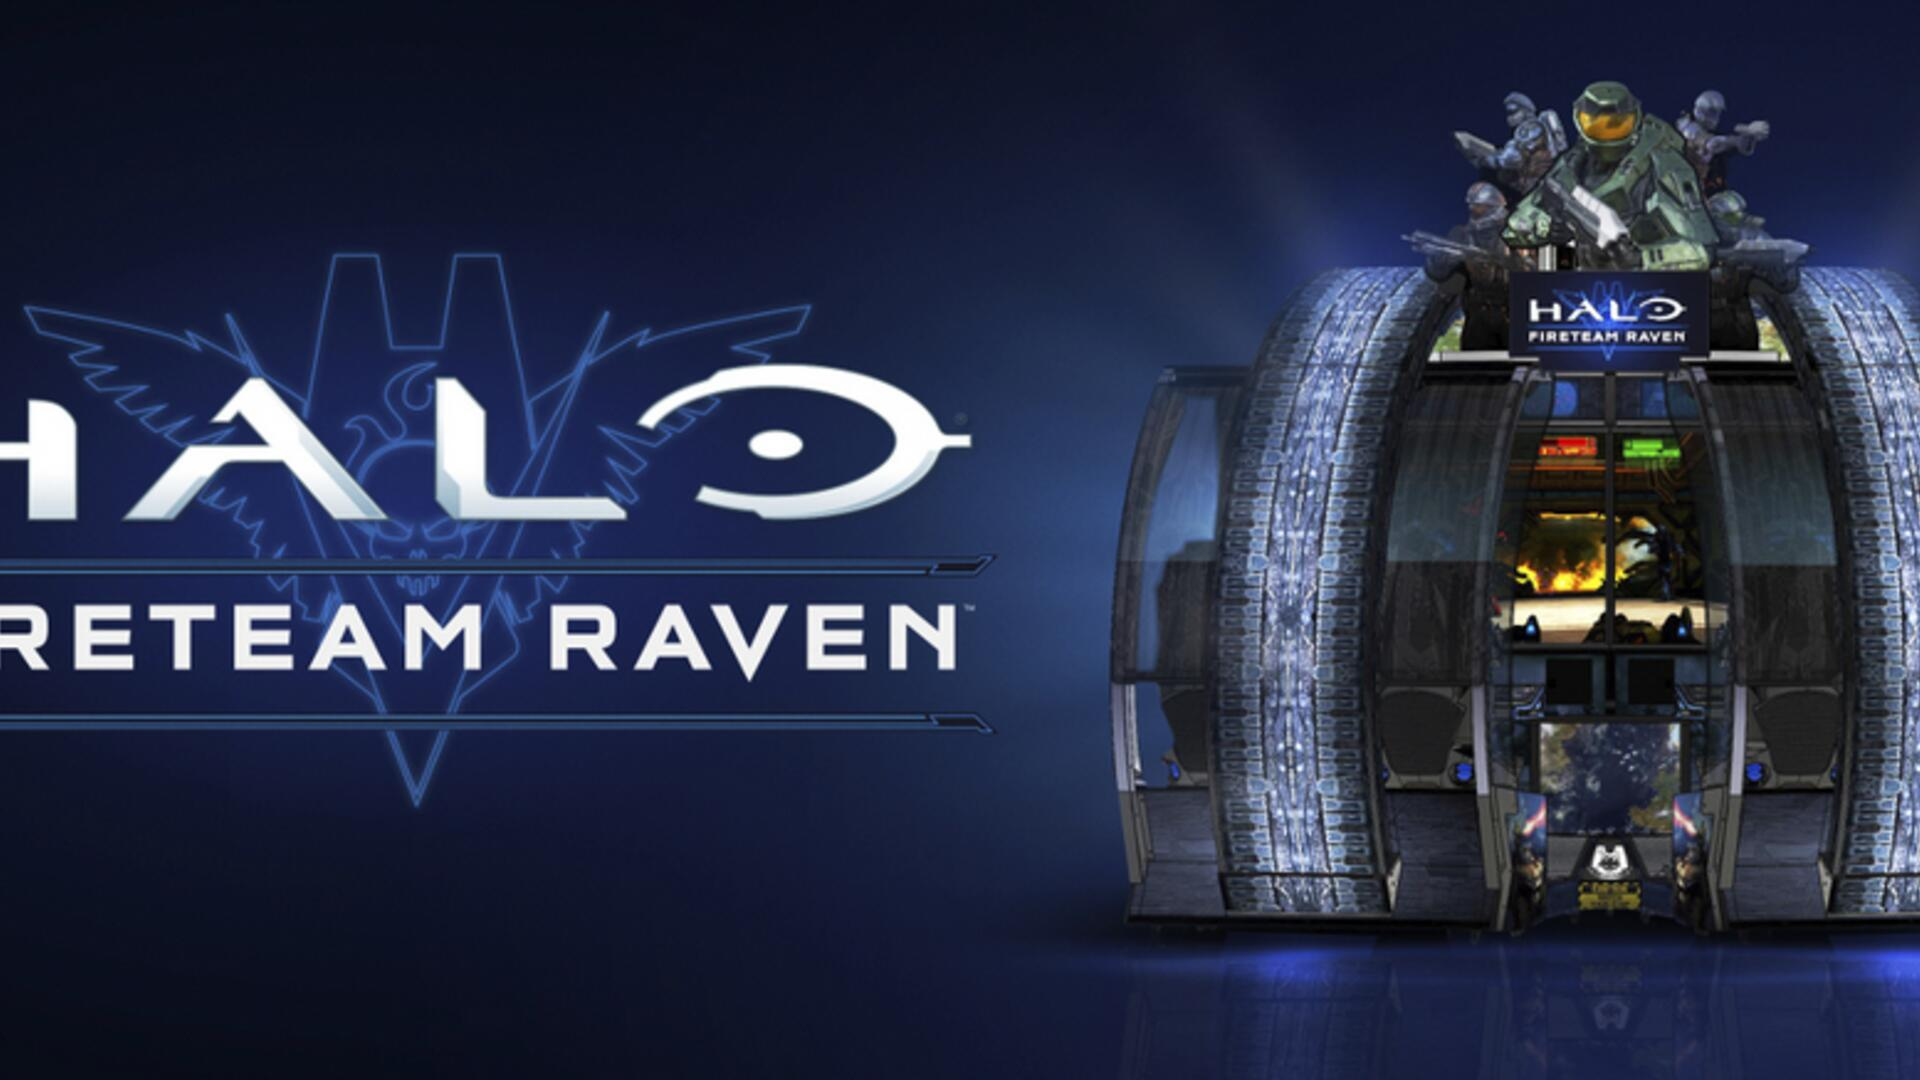 Halo Basically Announces a Vegas Residency With New Dave and Busters Arcade Game